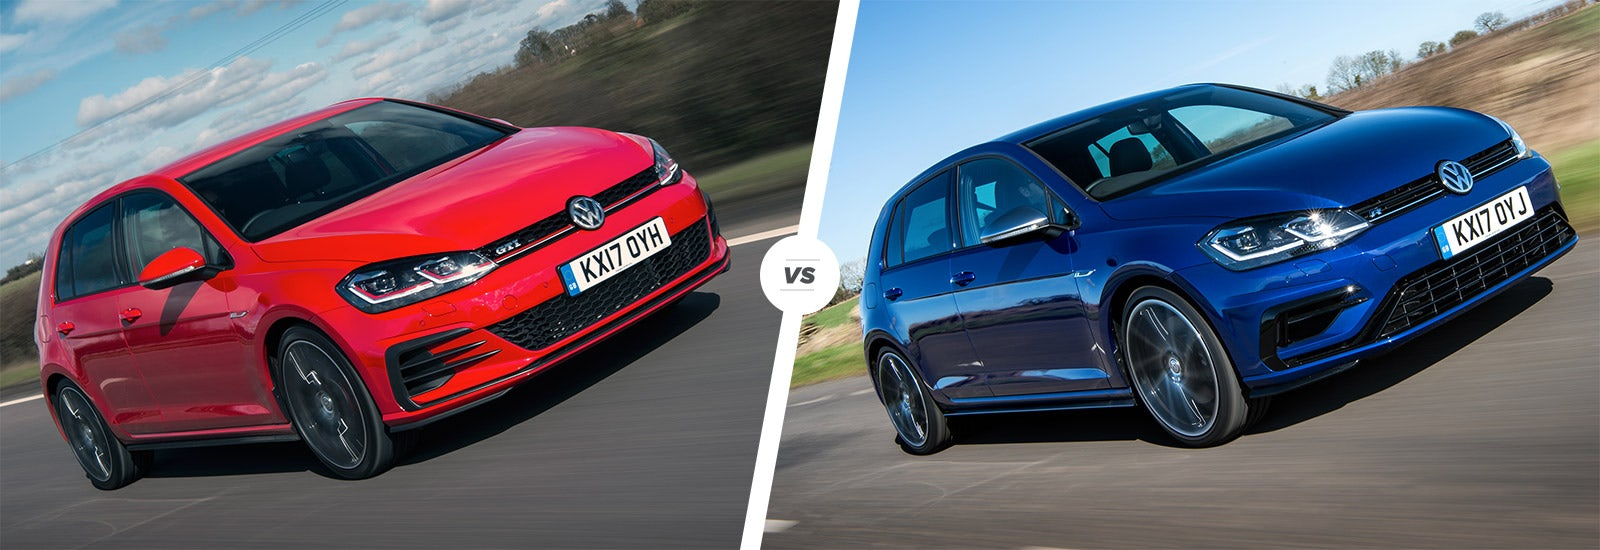 Vw Golf Gti Vs R Styling